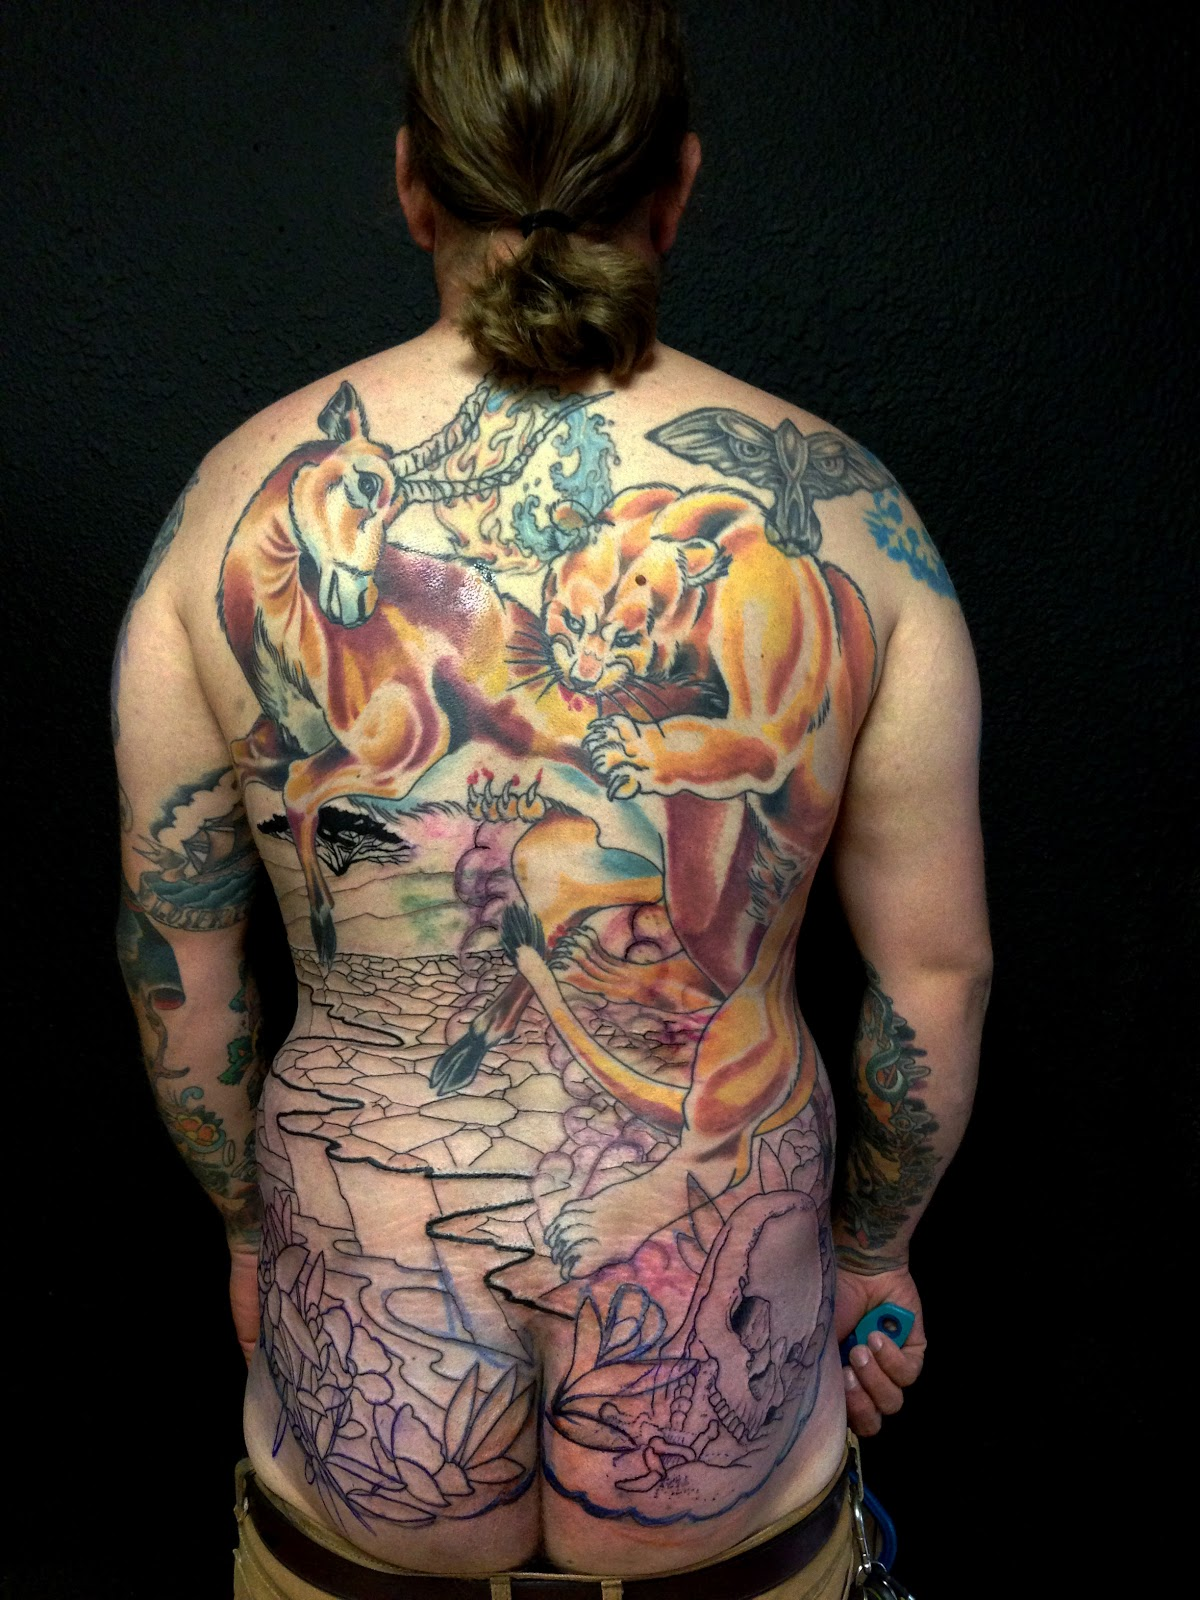 Matt Hodel Tattoo: Forward Progress On Backs